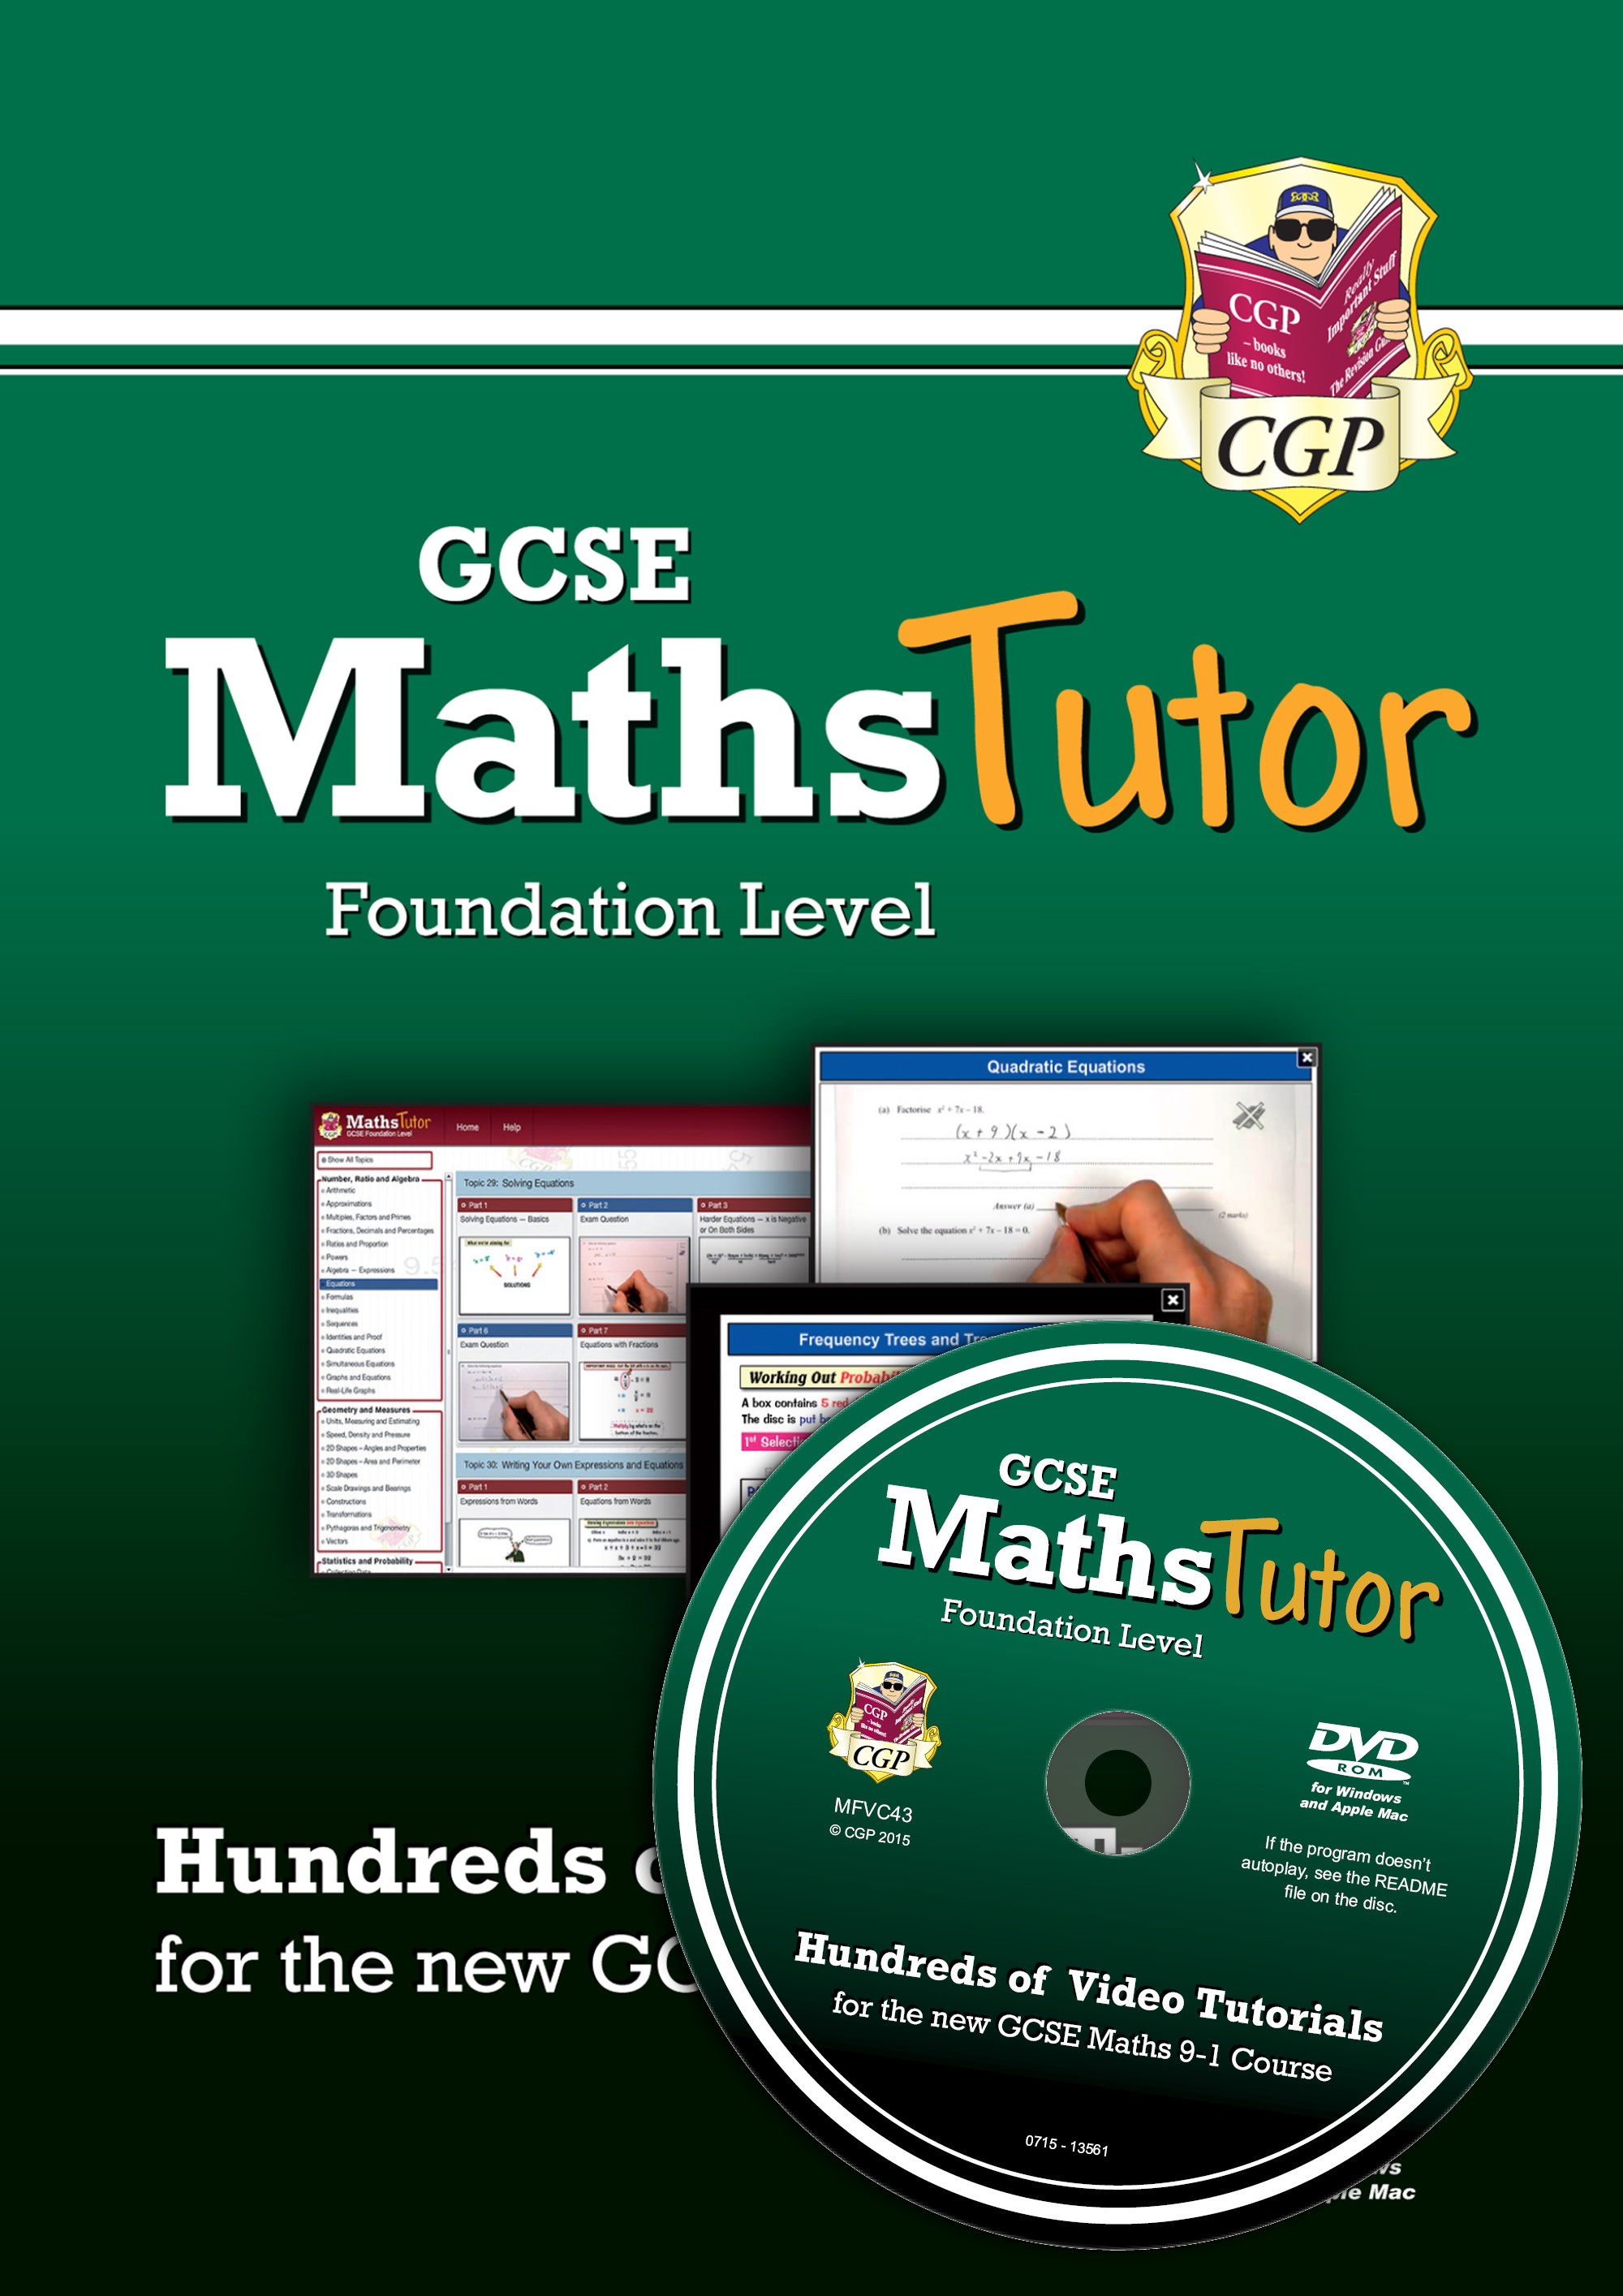 MFVC43 - MathsTutor: GCSE Maths Video Tutorials (Grade 9-1 Course) Foundation - DVD-ROM for PC/Mac